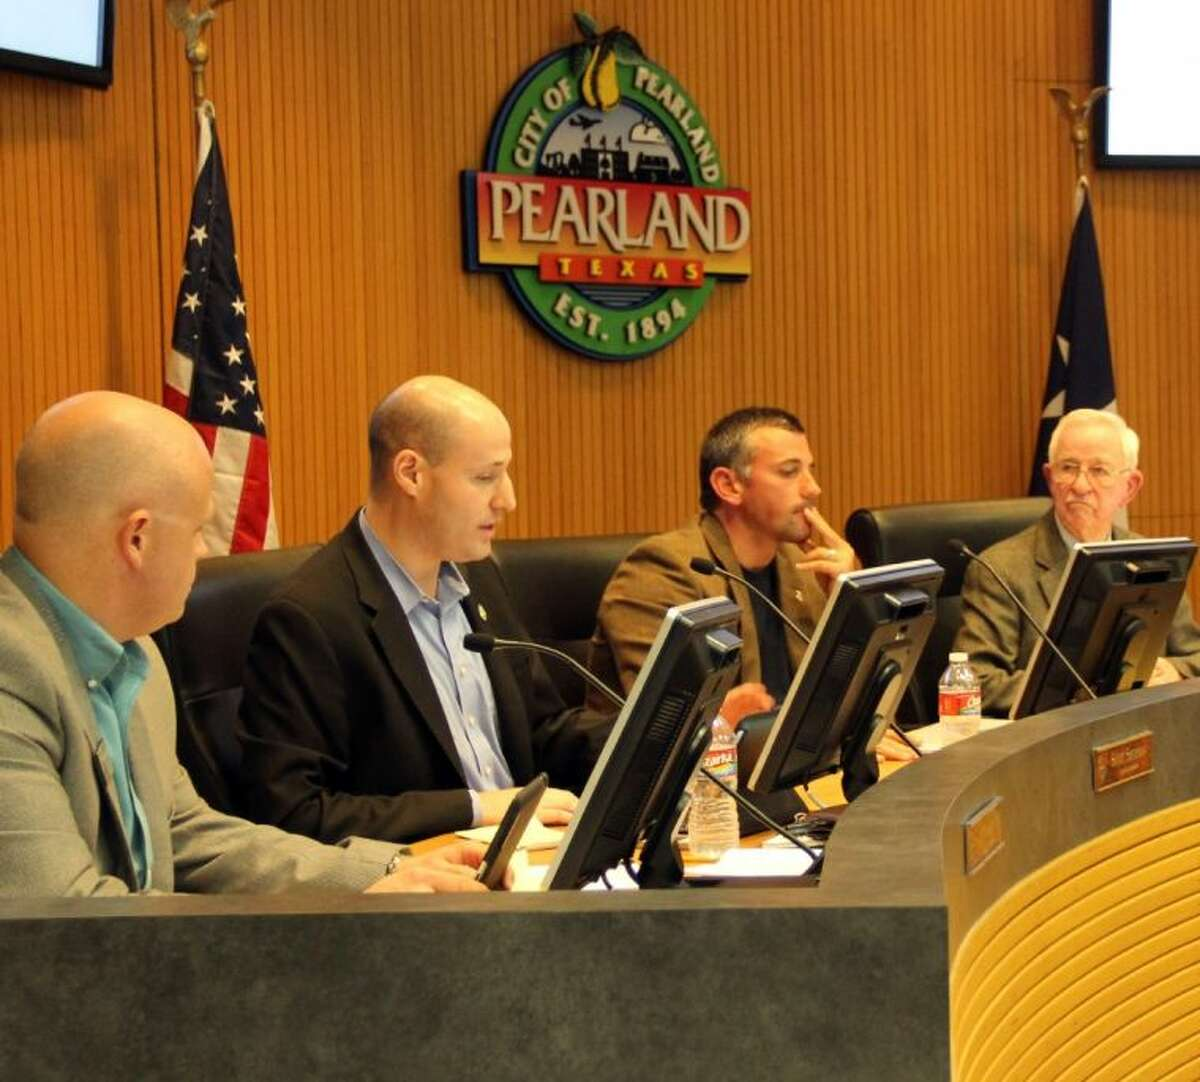 The Pearland City Council passed a resolution voicing their support for an uncoming Alvin Independent School District school bond election by unanimous vote at a council meeting held Monday (Oct. 24).